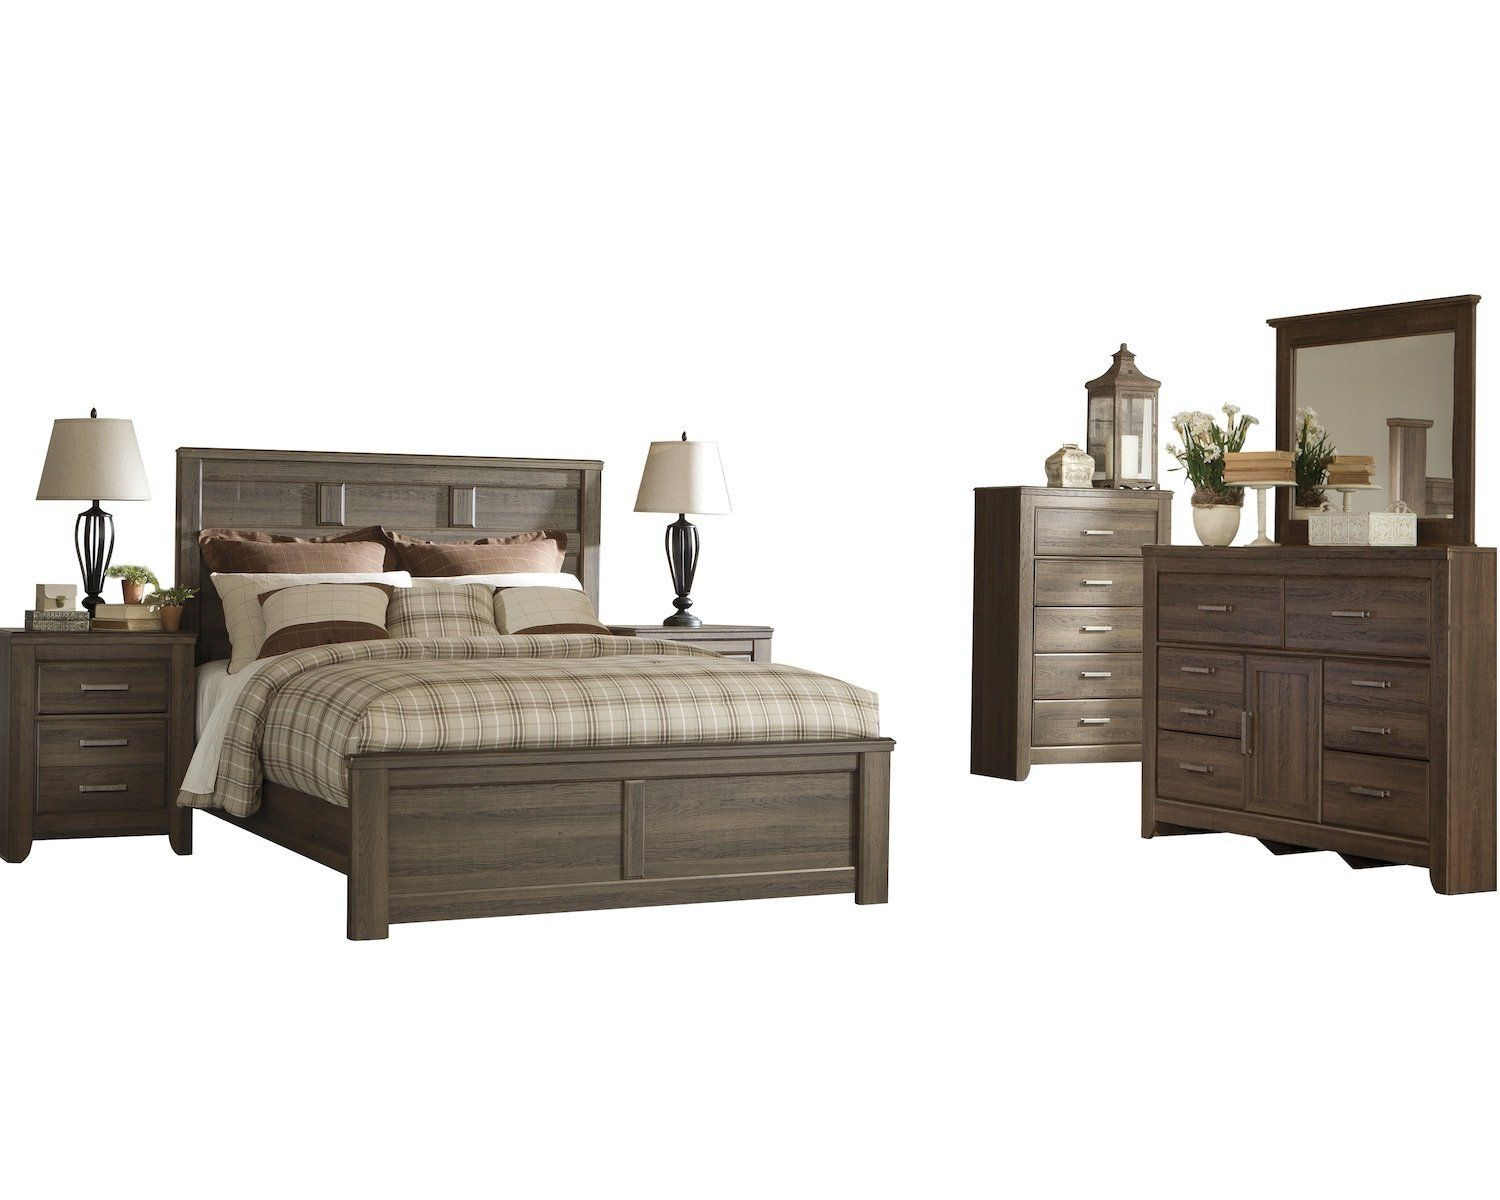 Ashley Juararo 6pc Cal King Panel Bedroom Set With Two Nightstand And Chest In Dark Brown Details Can Bedroom Set Bedroom Panel Ashley Bedroom Furniture Sets Cal king bedroom furniture set